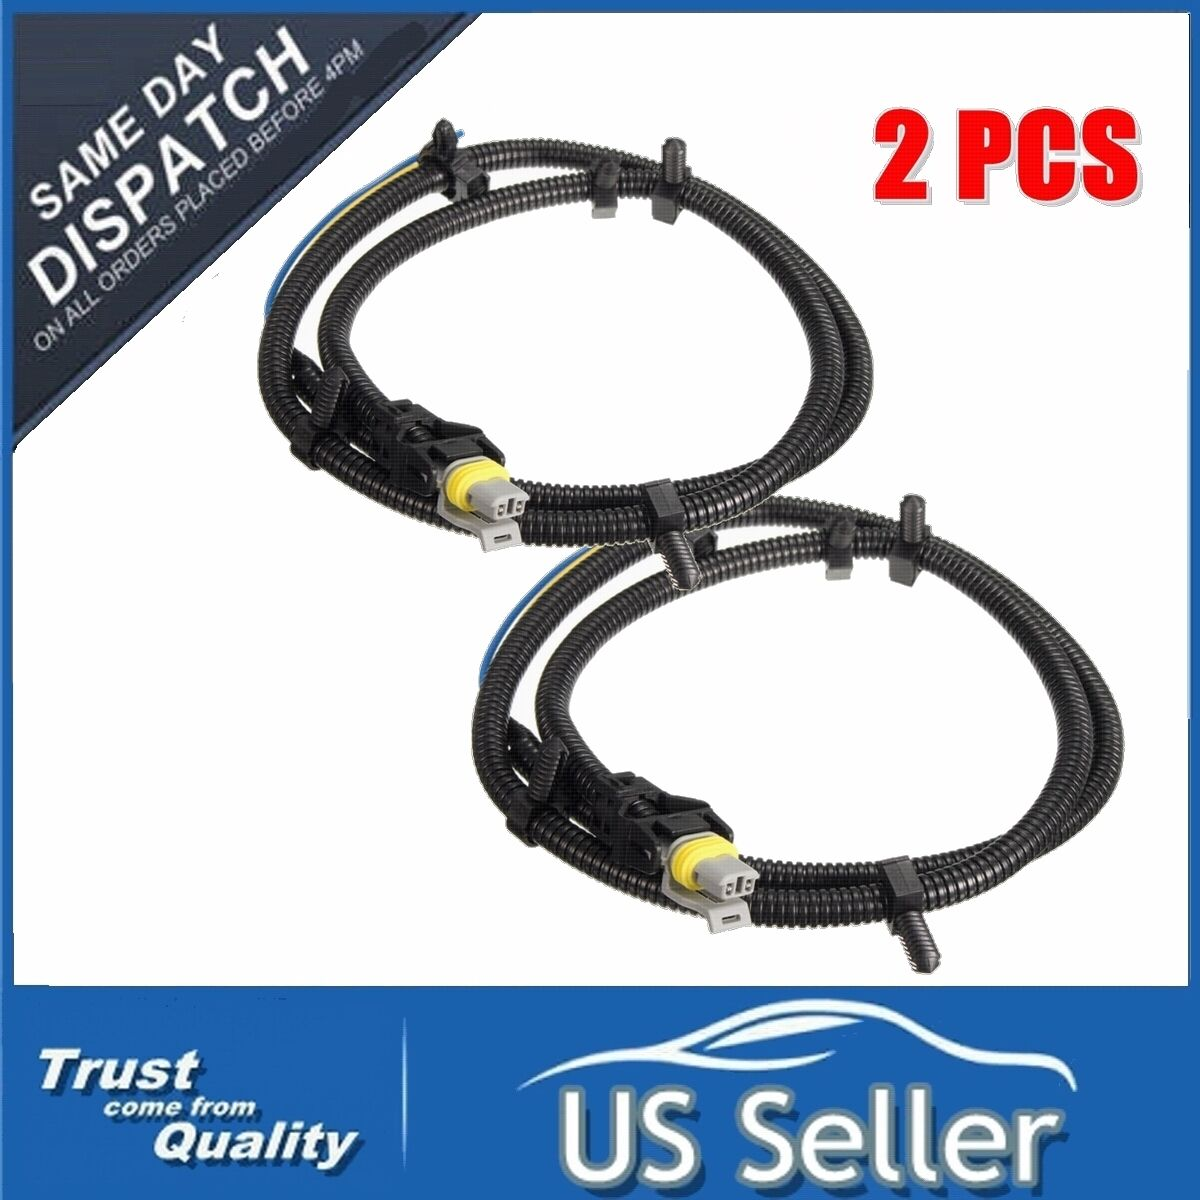 2x Abs Wheel Speed Sensor Wire Harness Plug Pigtail For Buick Chevy 1997 Chevrolet Blazer Wiring Gm 10340314 1 Of 7